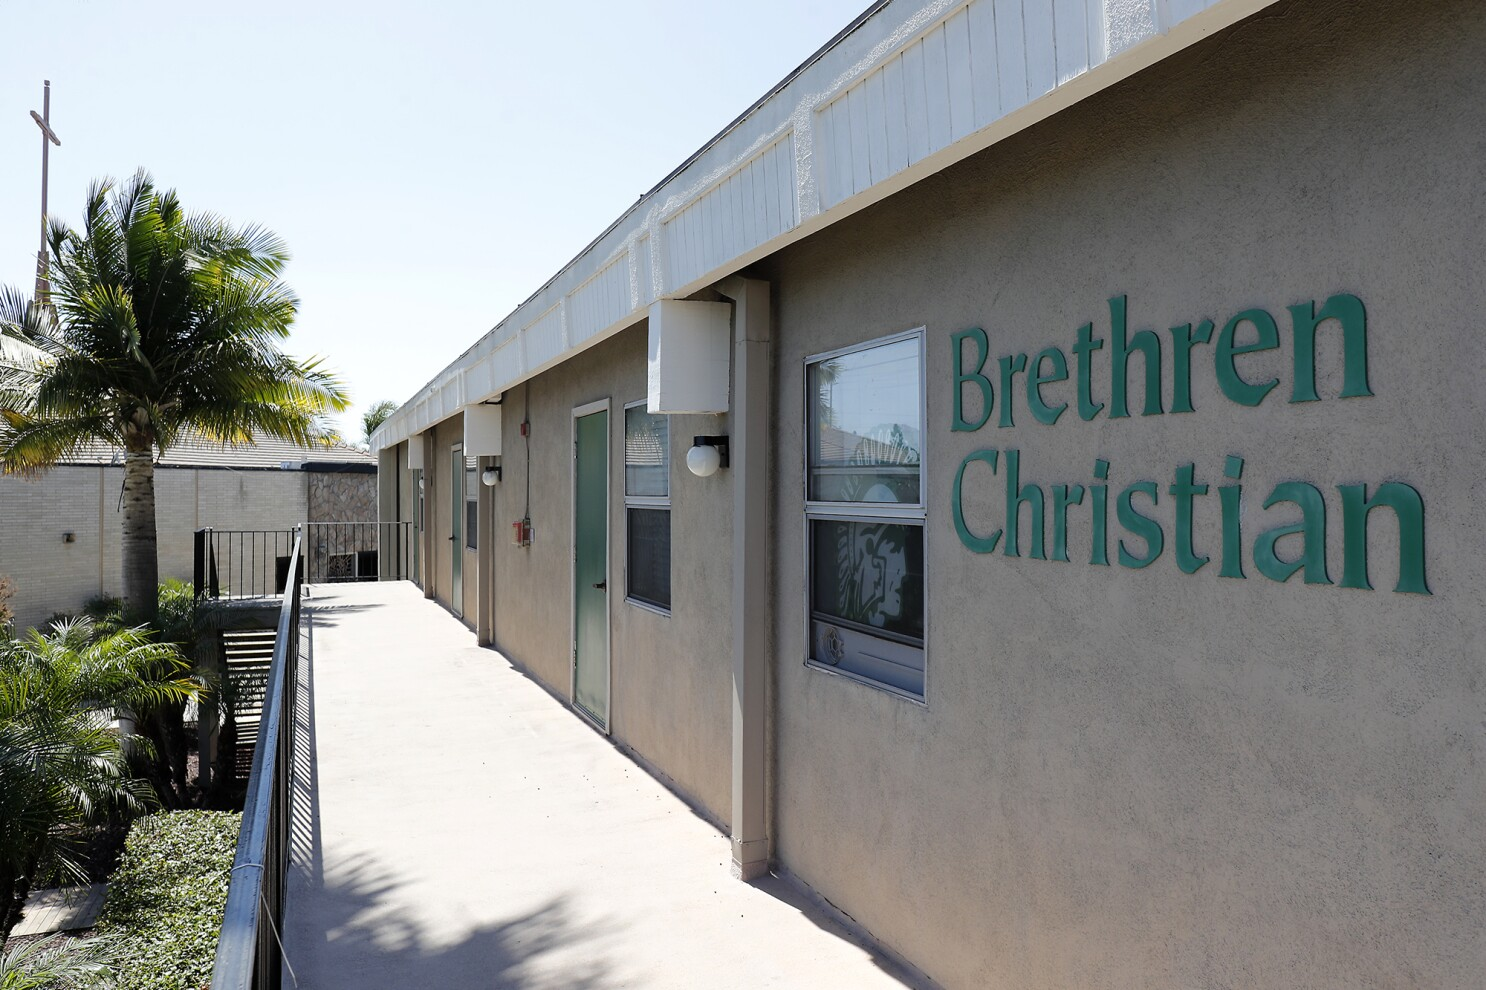 It S The End Of An Era Brethren Christian High School Closes After 73 Years Of Operation Los Angeles Times